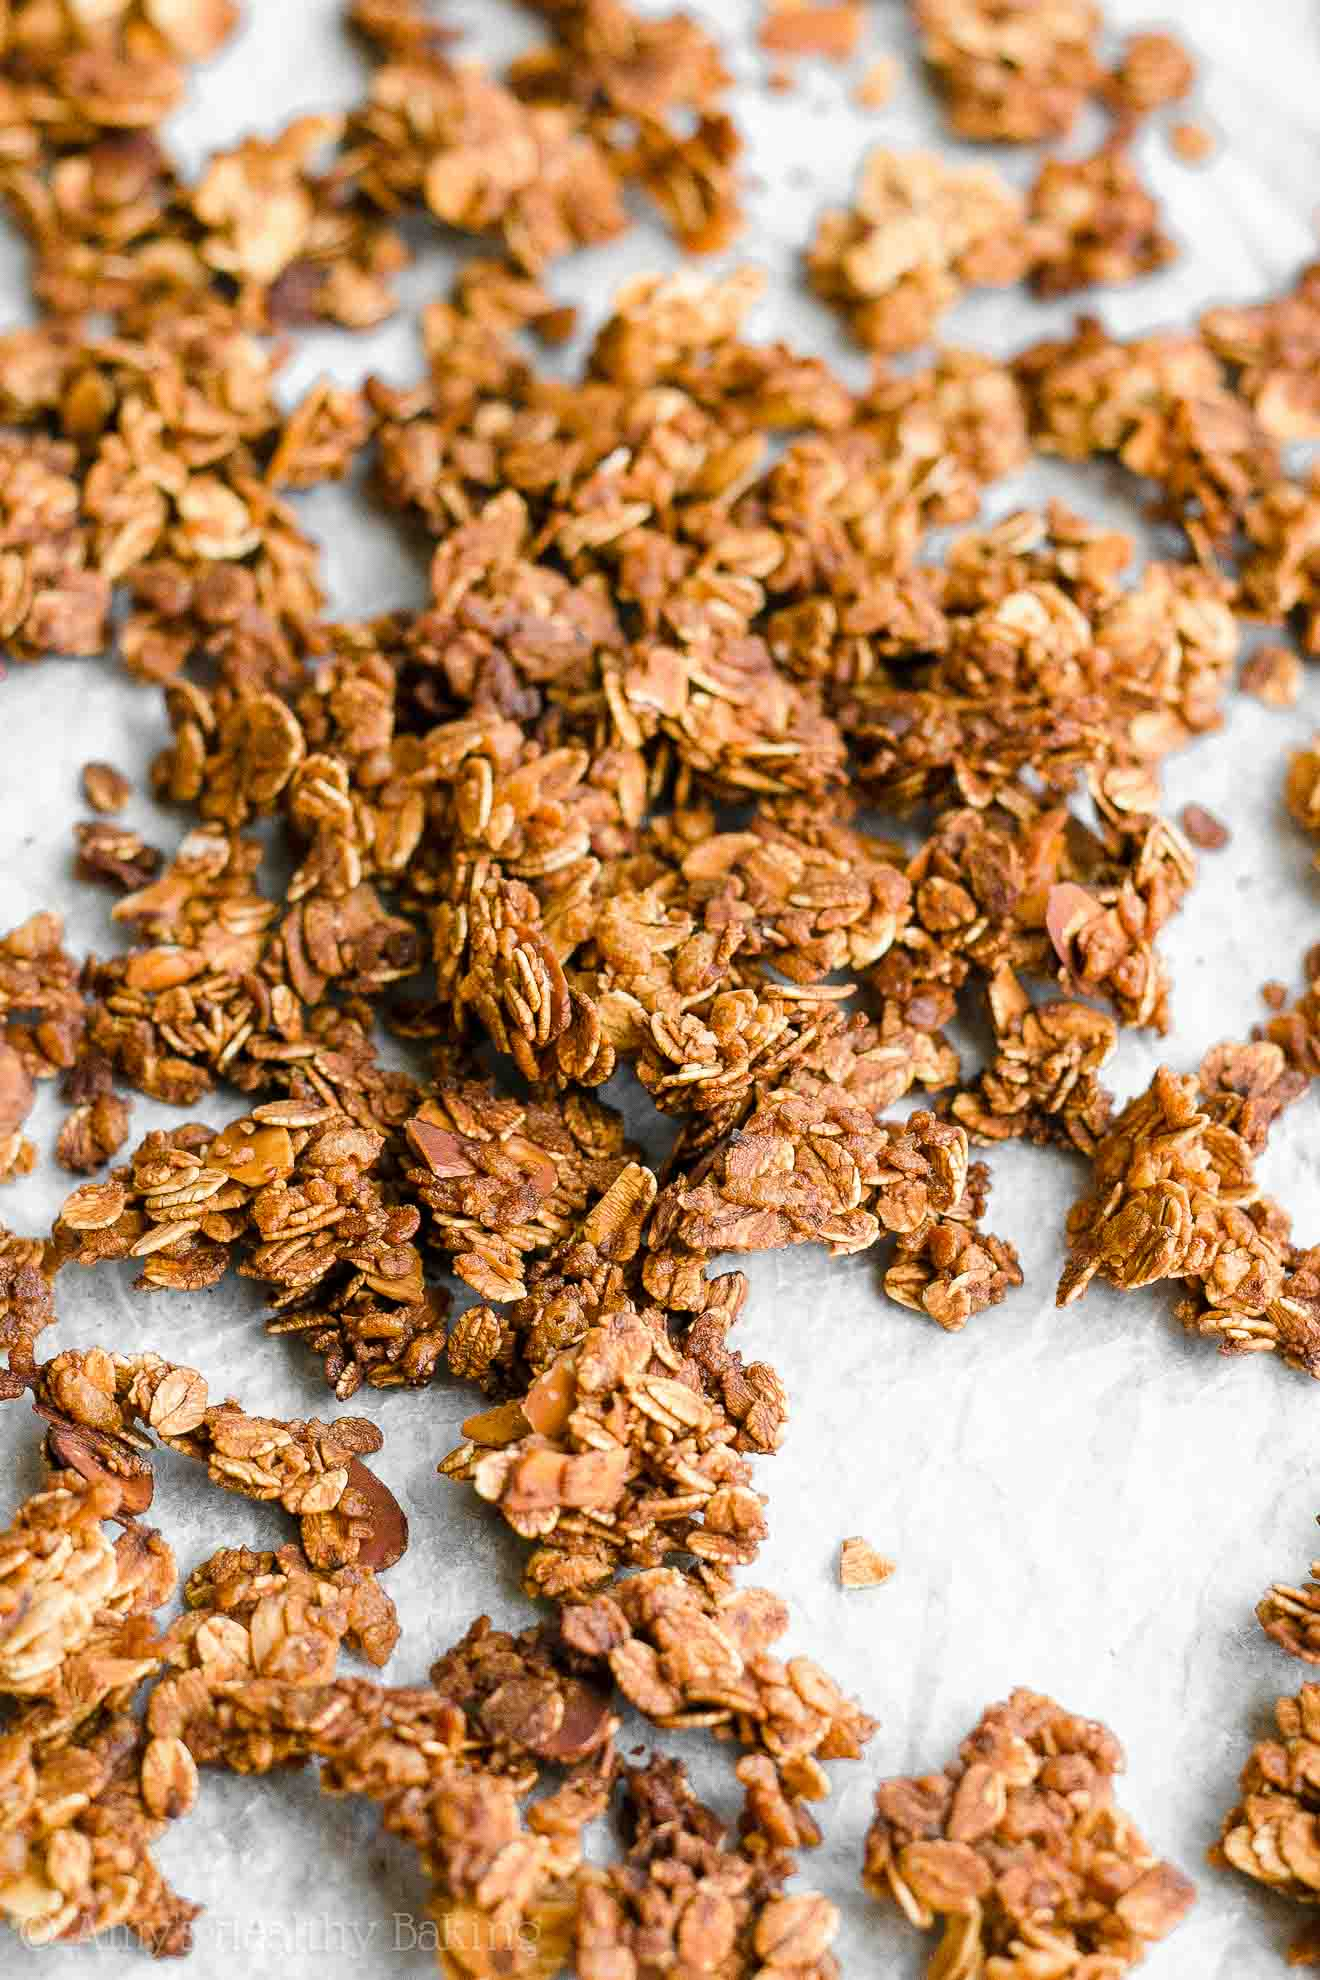 Healthy Low Fat Crunchy Vanilla Almond Granola Clusters